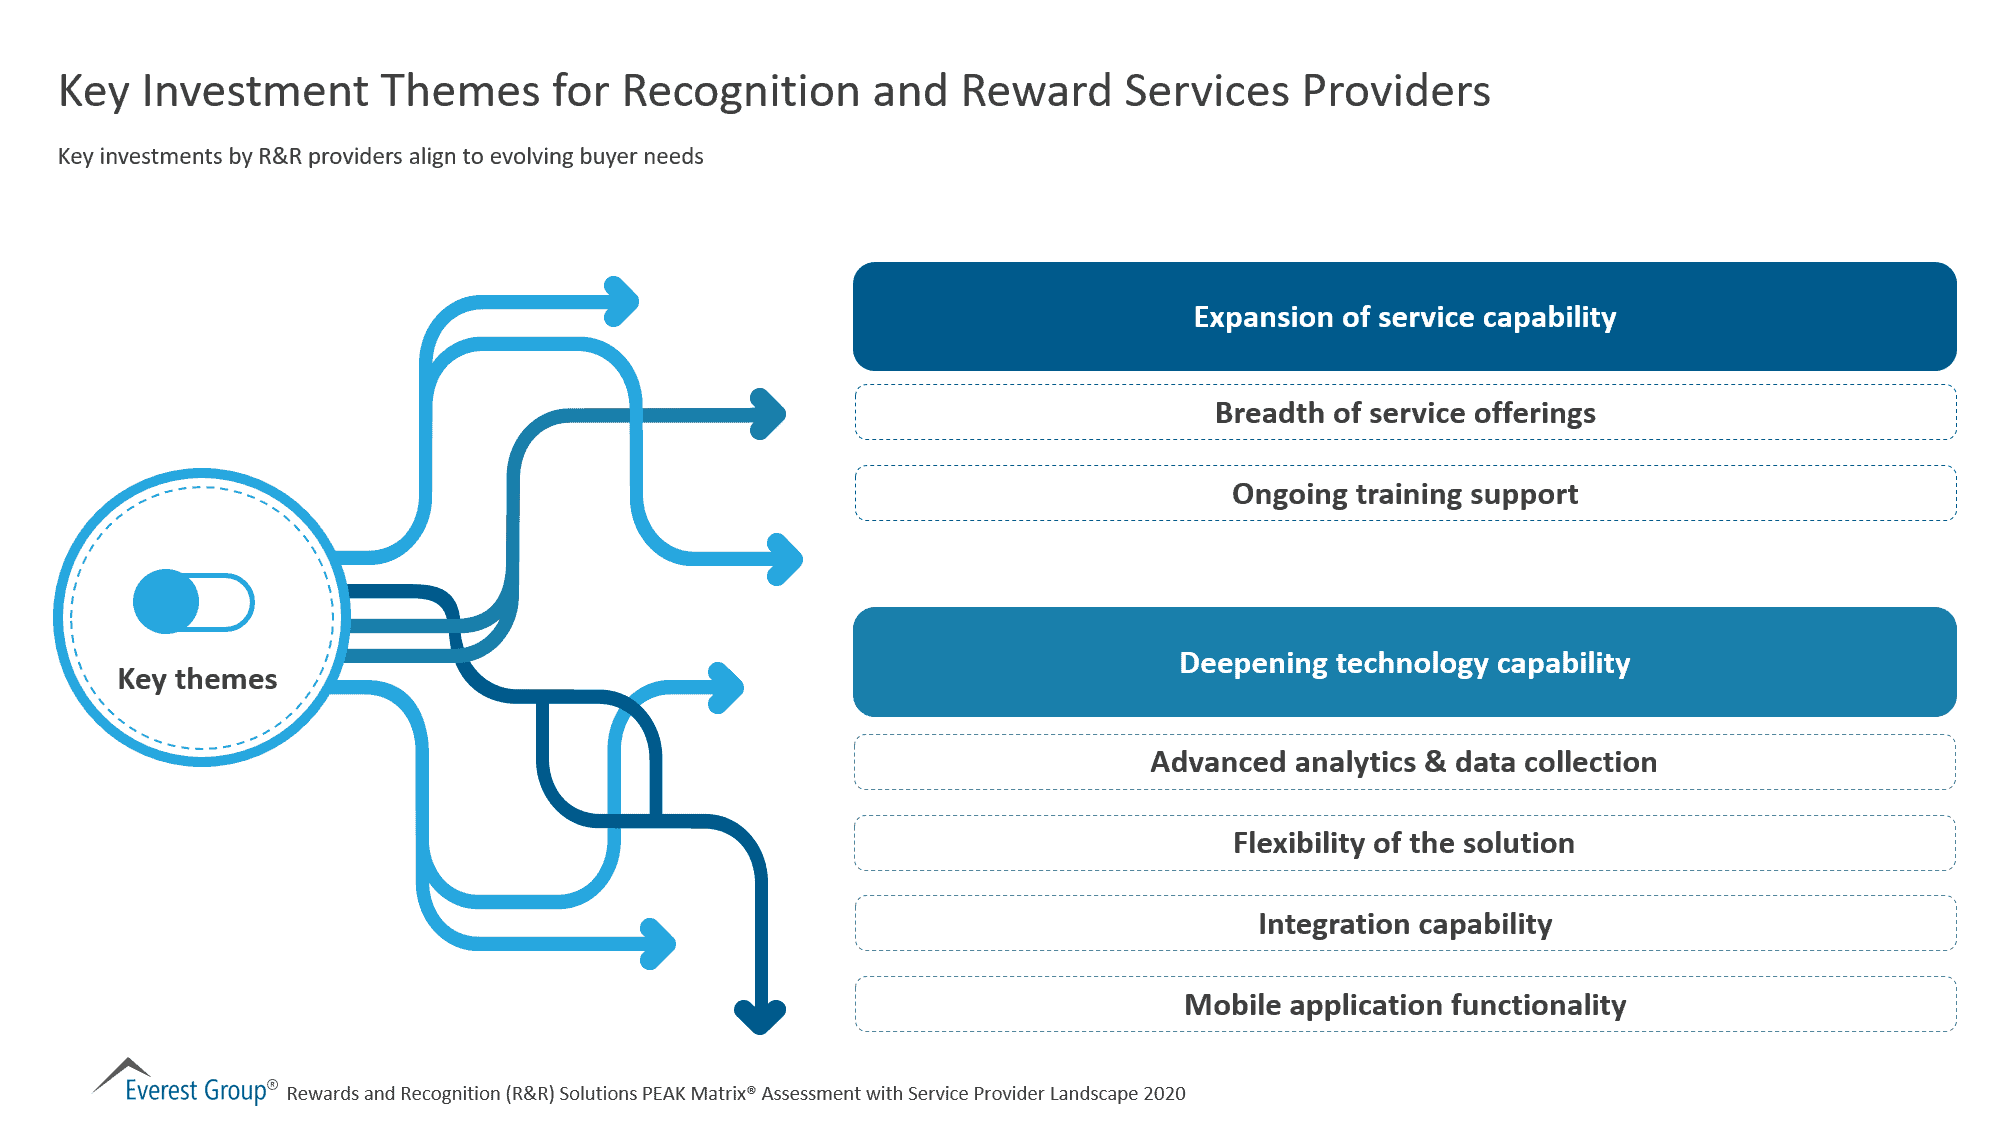 Key Investment Themes for Recognition and Reward Services Providers